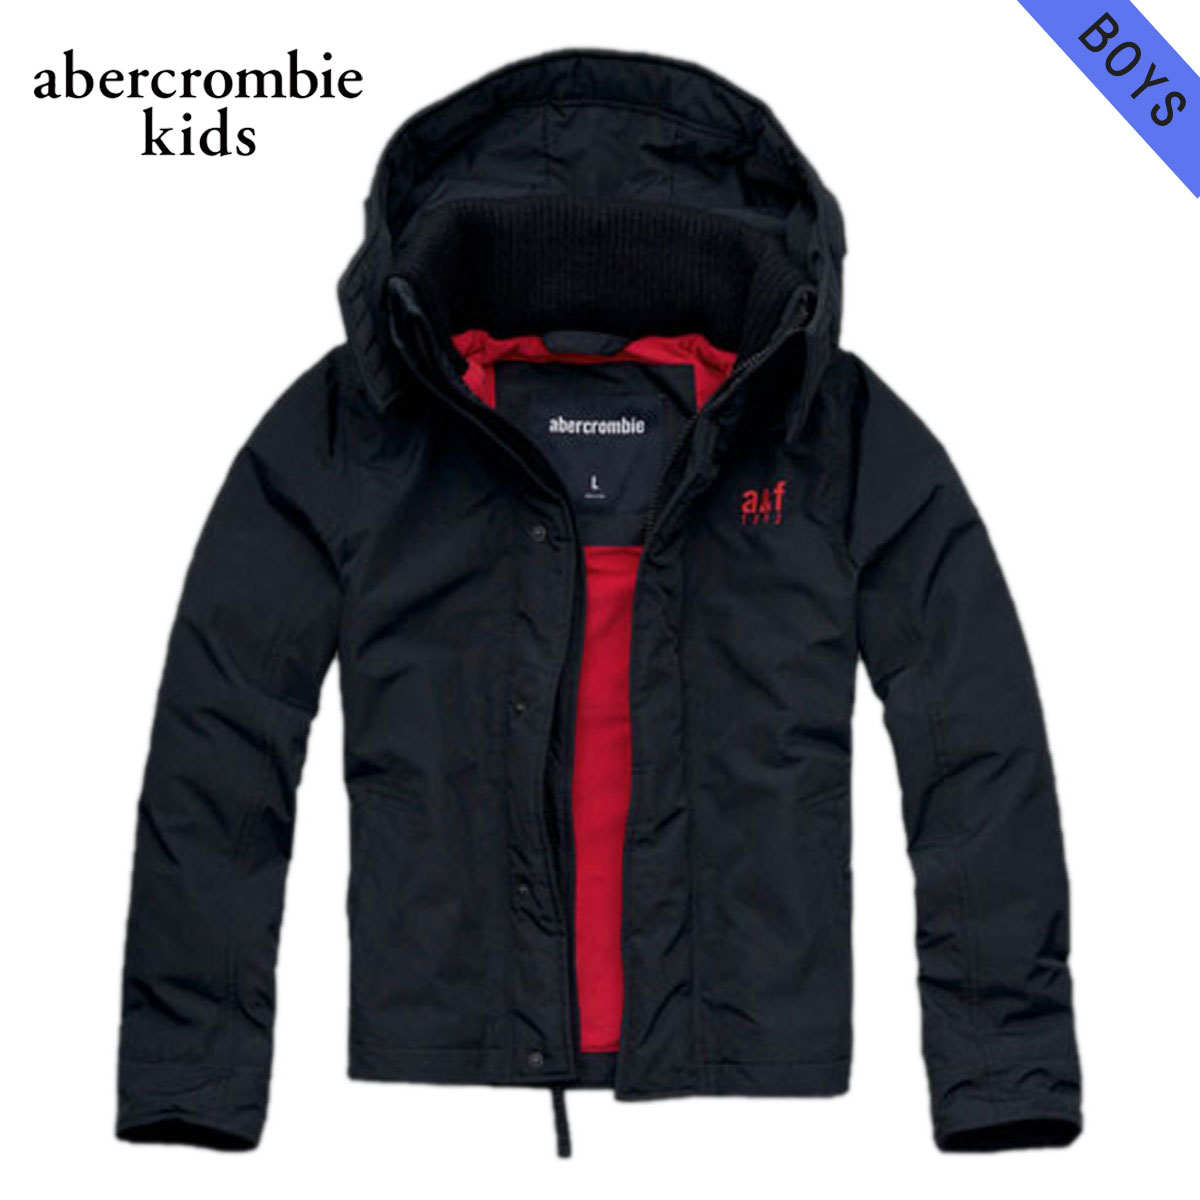 35%OFFセール 【販売期間 12/4 20:00~12/11 1:59】 アバクロキッズ AbercrombieKids 正規品 子供服 ボーイズ ジャケット a&f all-season weather warrior 232-722-0107-023 NAVY D30S40